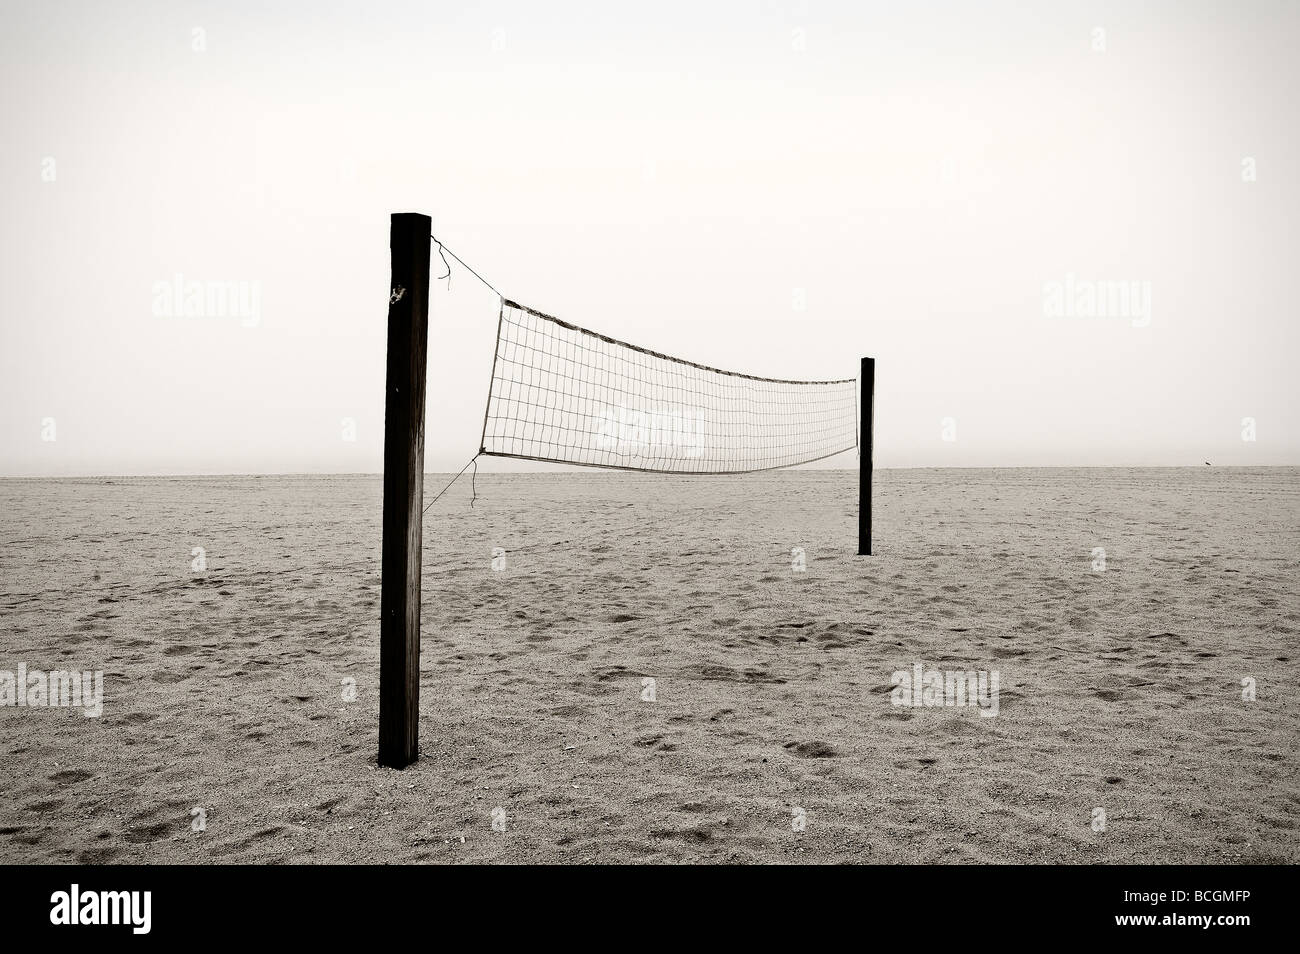 Beach-Volleyball-Netz Stockbild